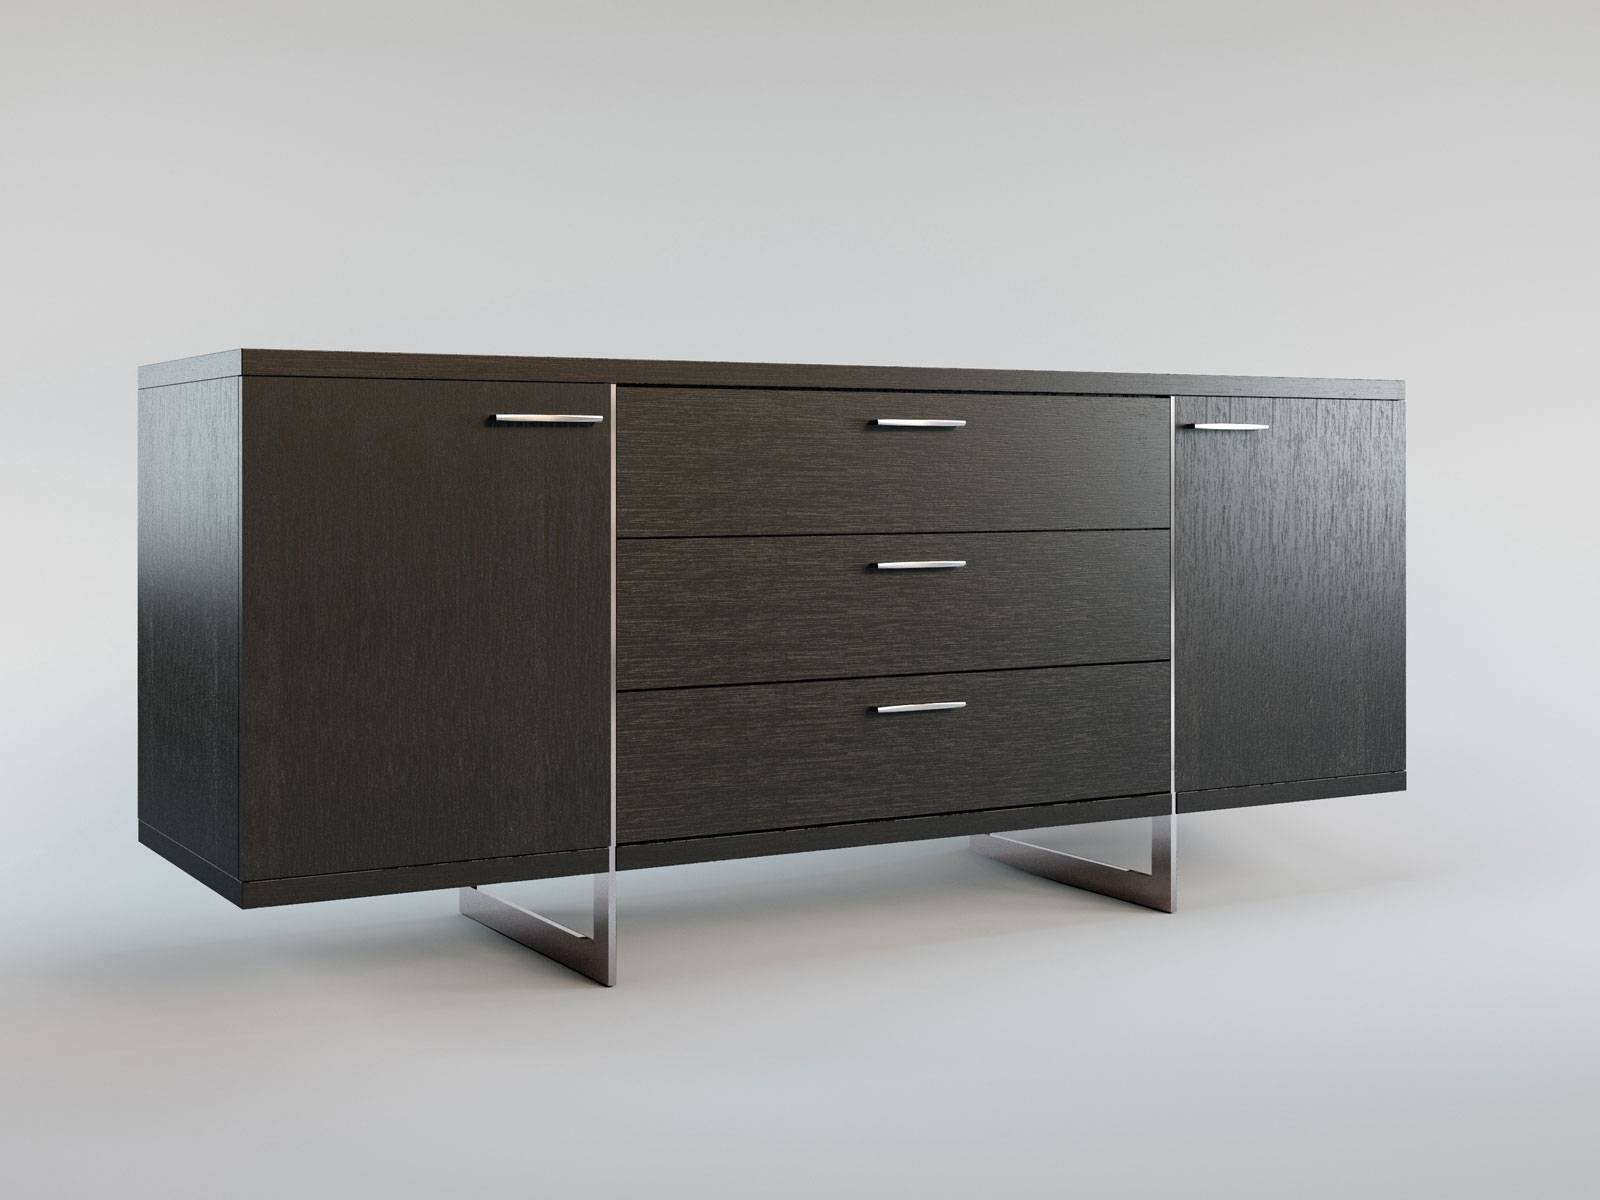 Contemporary Sideboard Buffet With Three Storage Drawers Tulsa inside Contemporary Sideboards (Image 6 of 30)